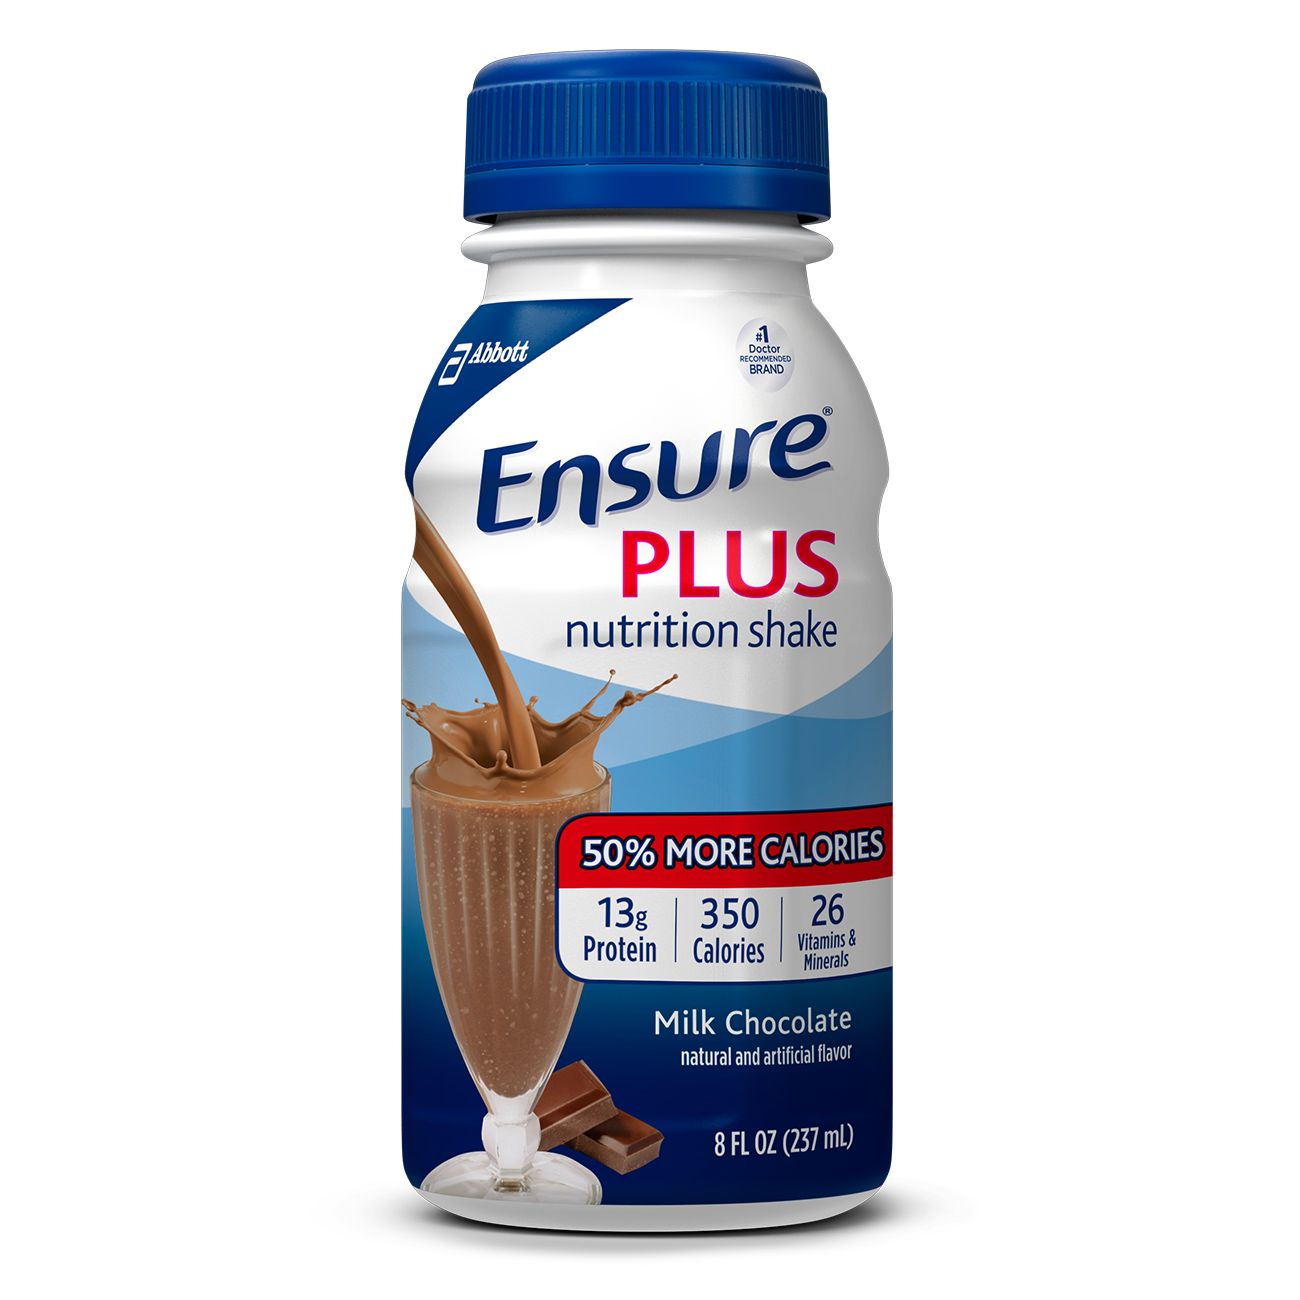 Ensure Plus Nutrition Shake Milk Chocolate with 13 grams of protein, Meal Replacement Shakes, 8 Fl oz Bottles, 6 Ct